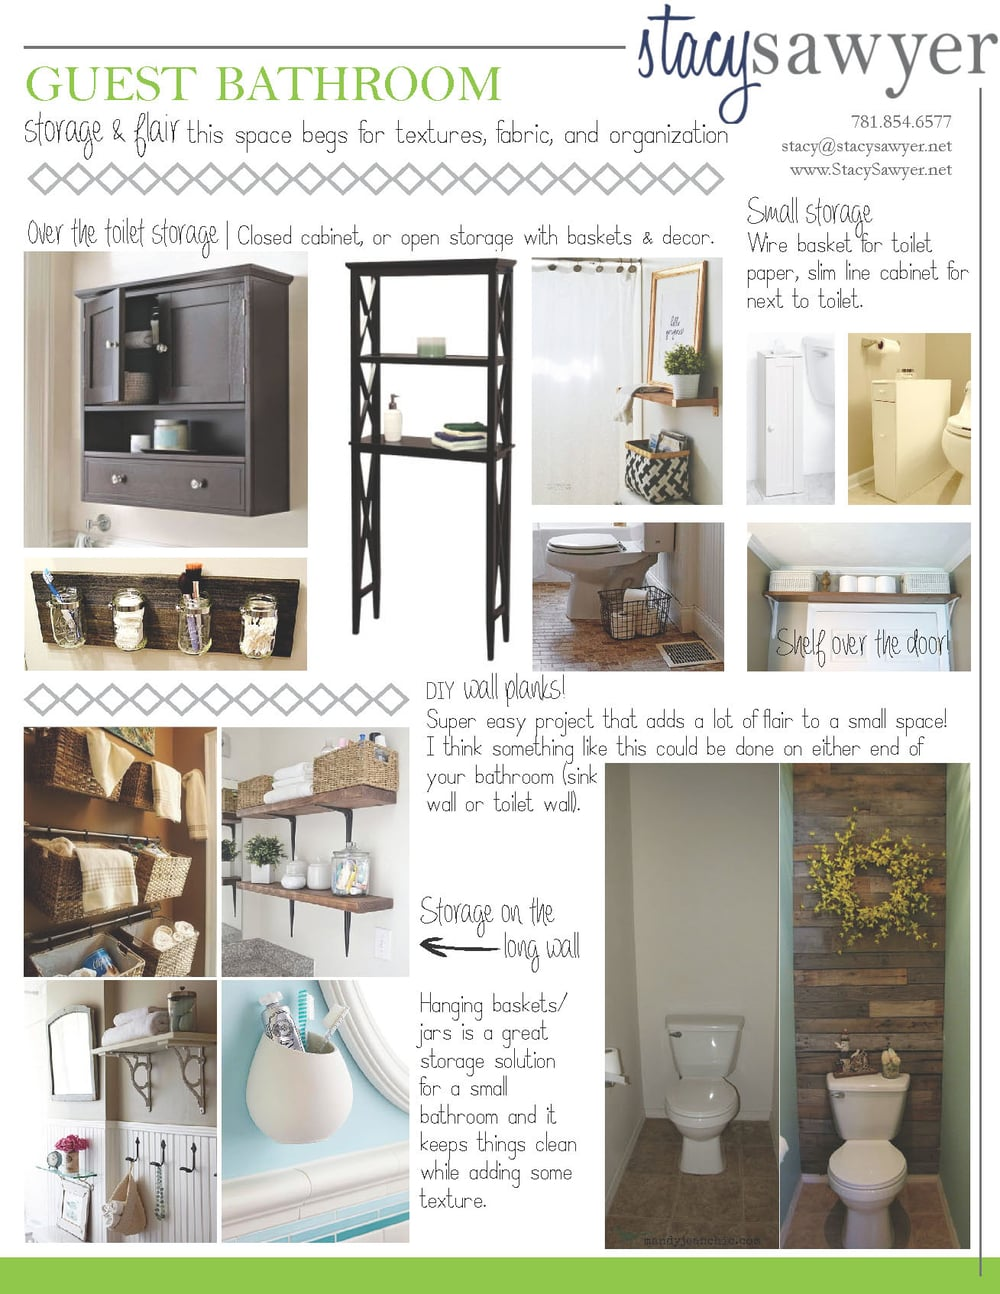 Notes_Design Boards_Page_5.jpg